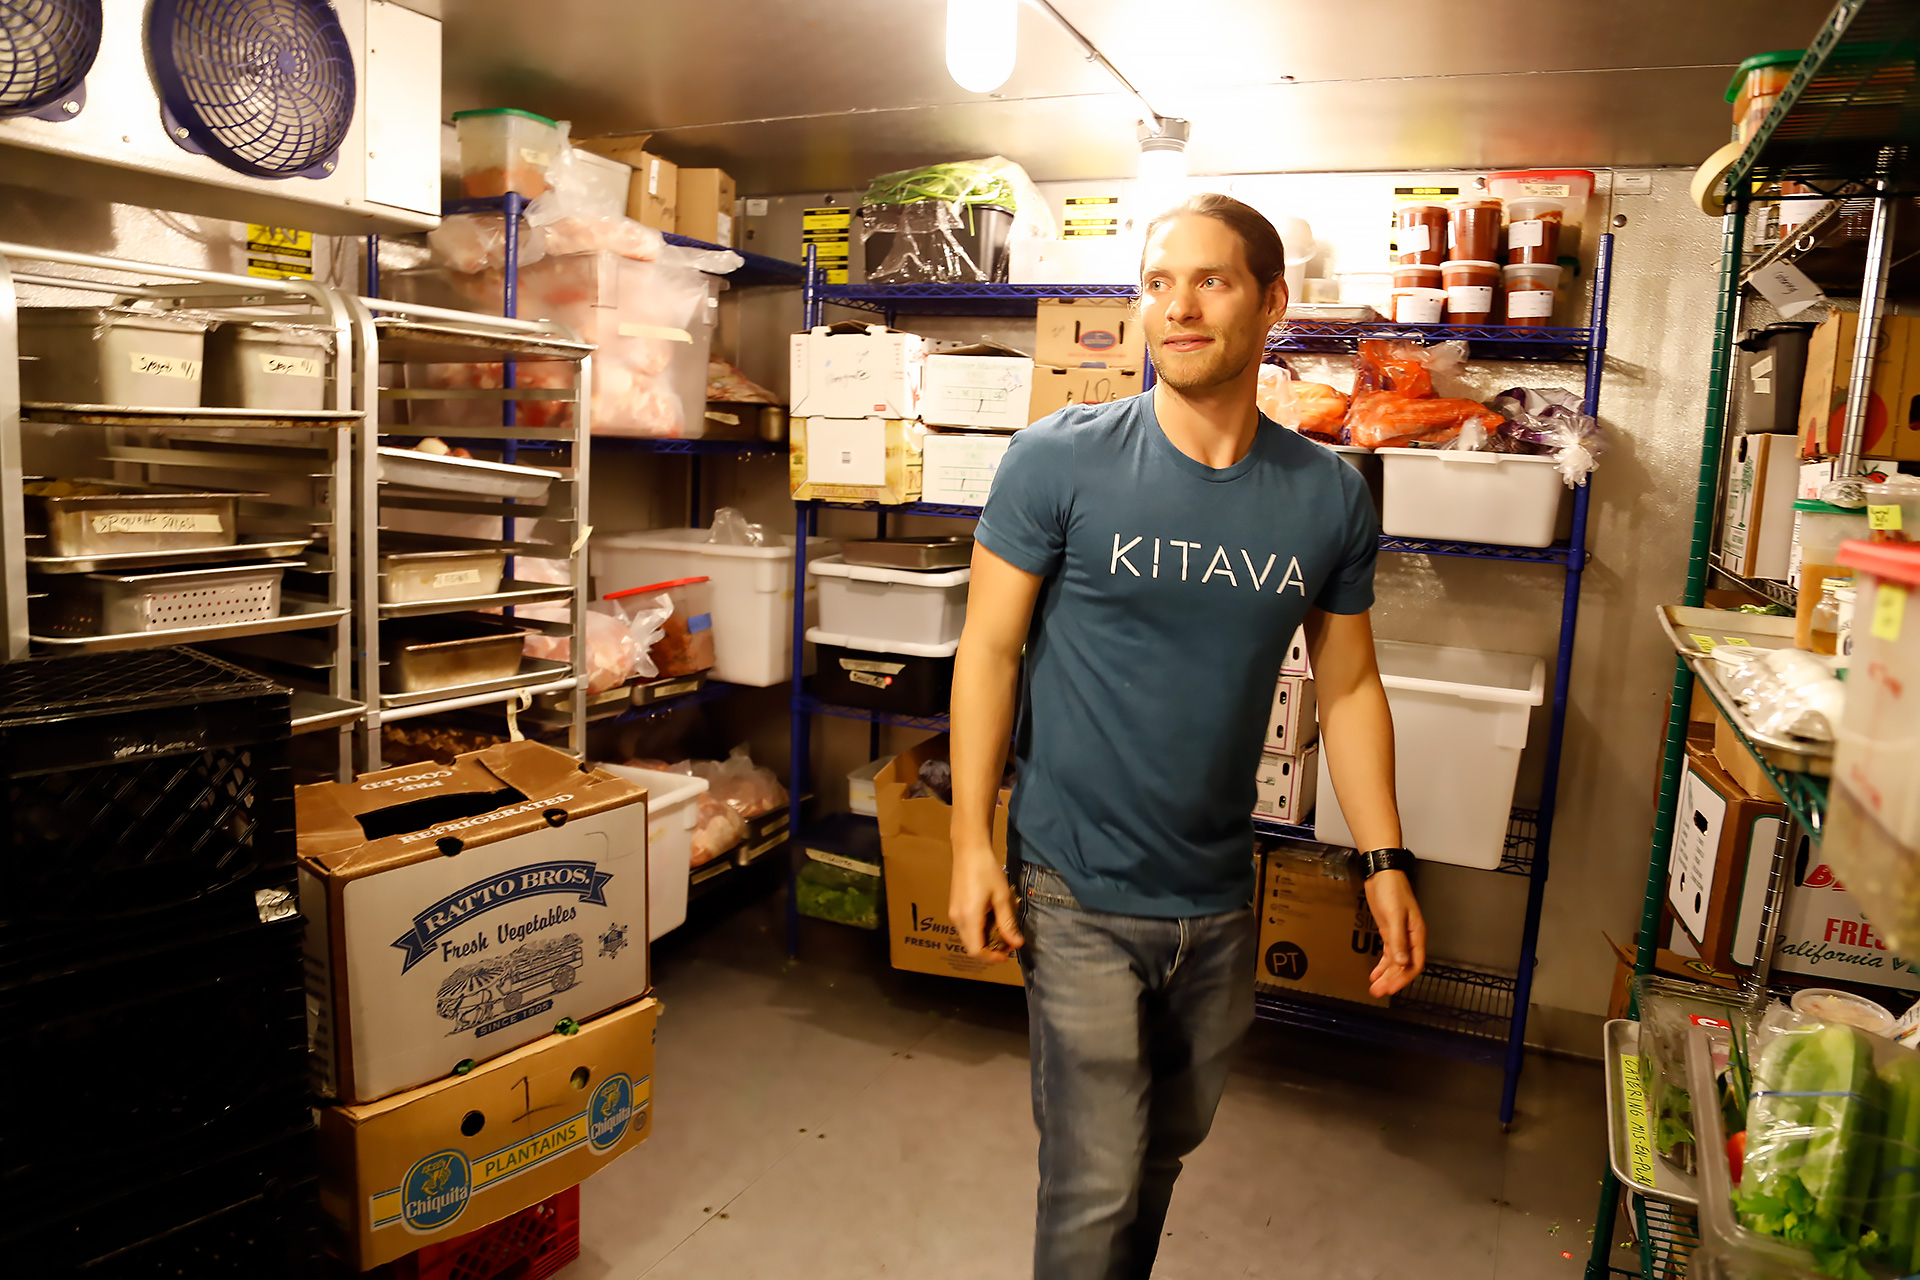 Bryan Tublin shows off the large walk-in cold storage space.